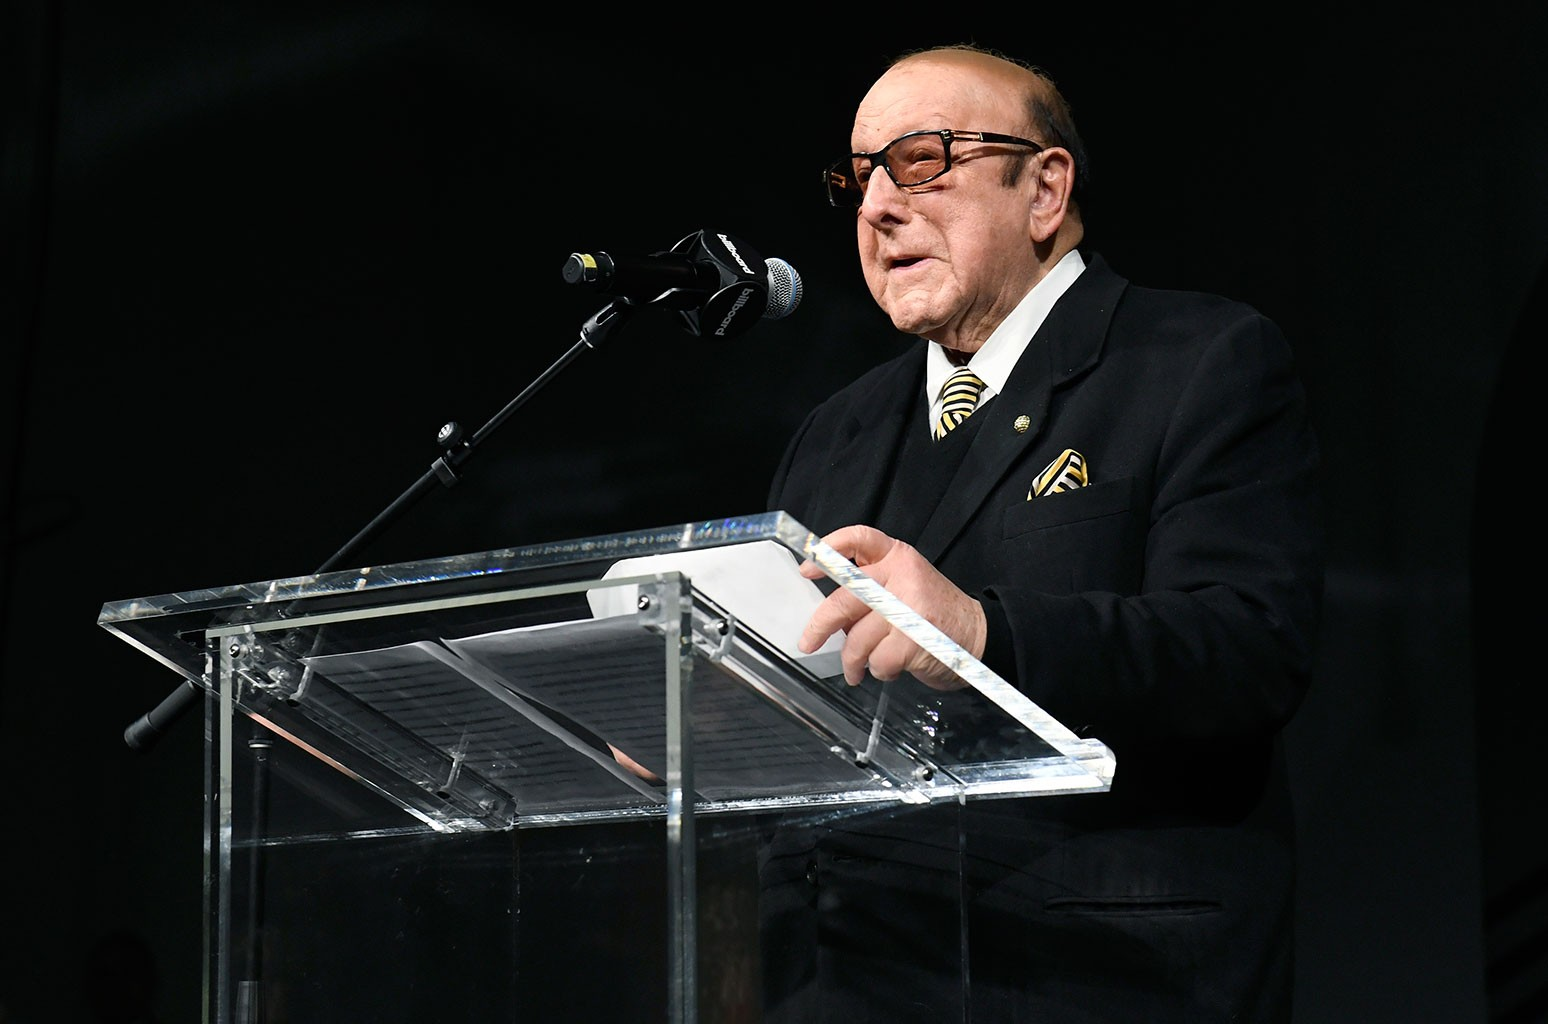 Clive Davis' Second Virtual Pre-Grammy Gala Postponed Due to His Illness